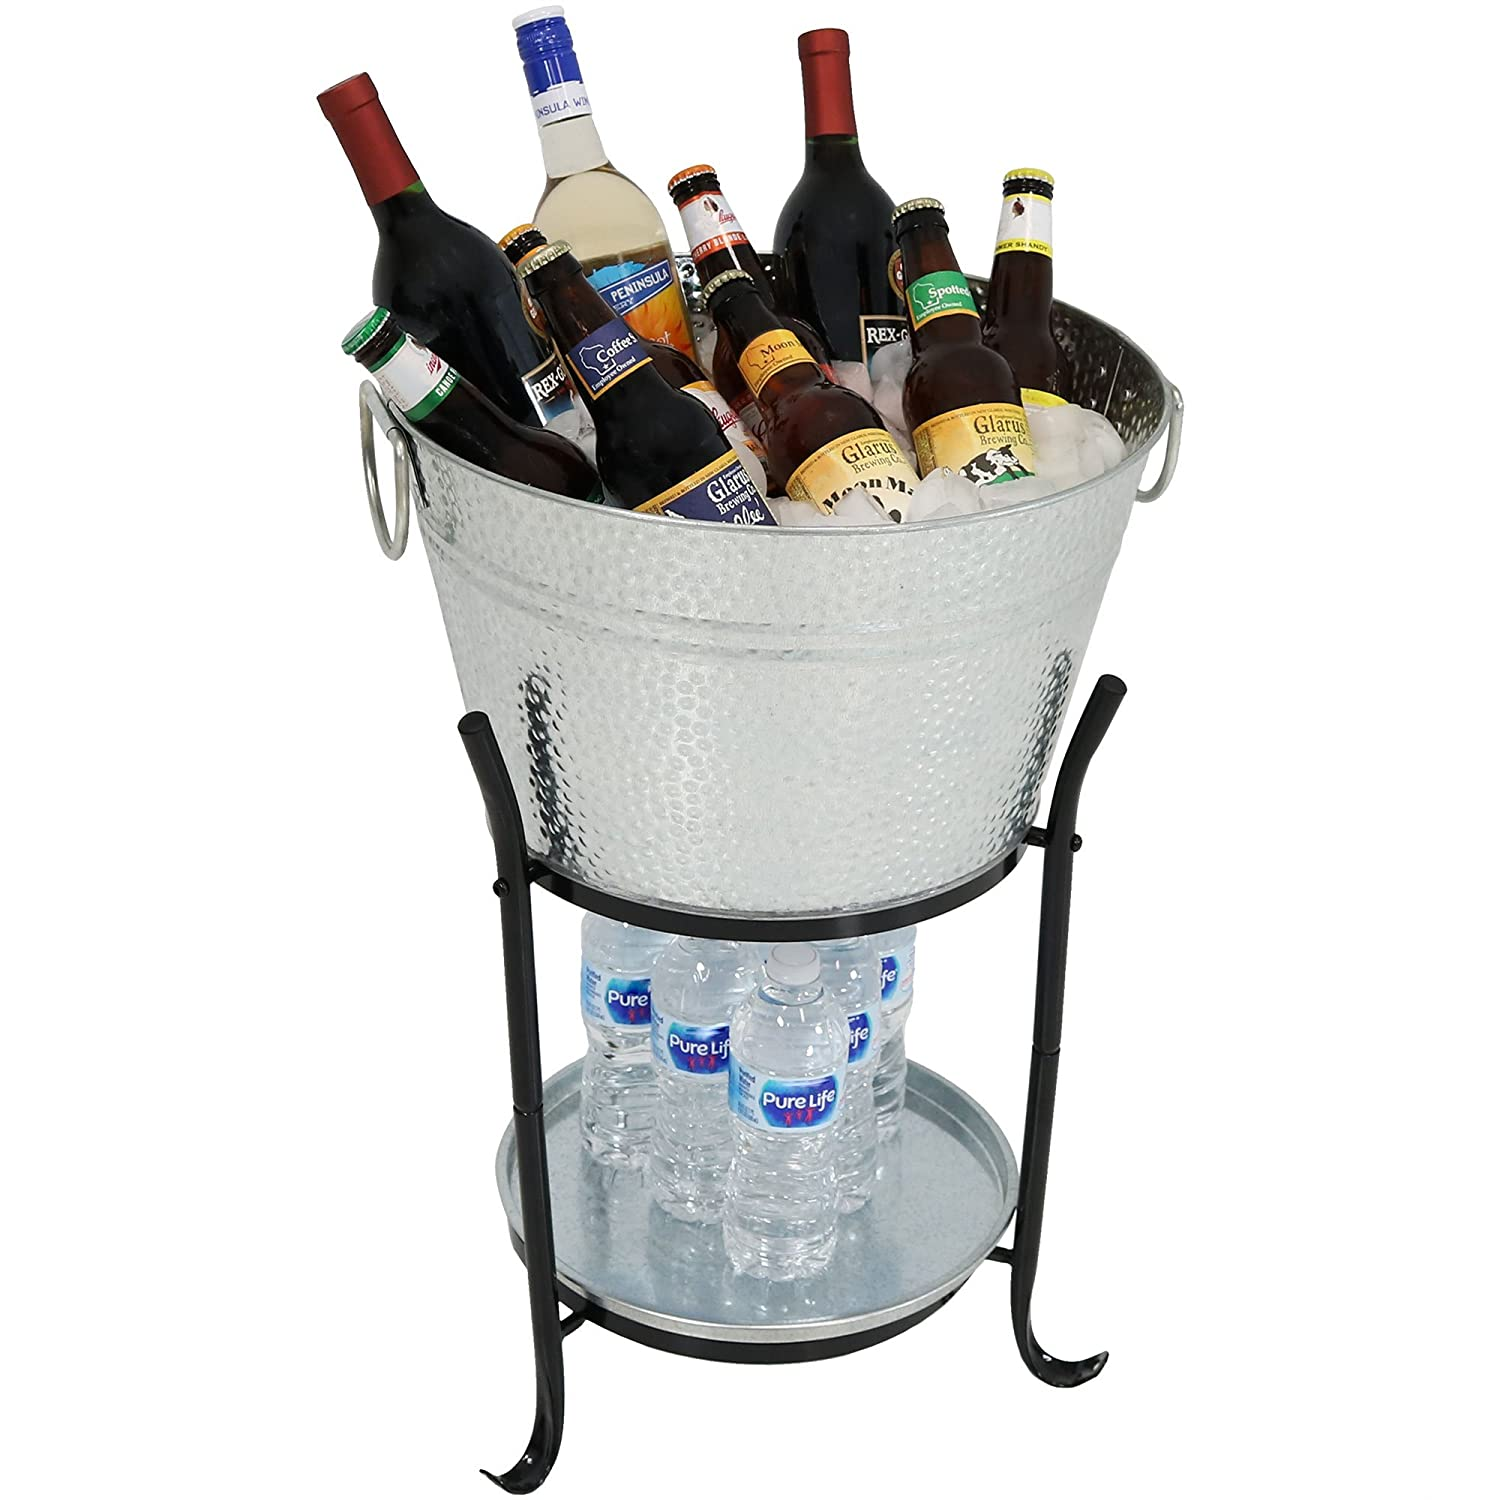 Sunnydaze Ice Bucket Drink Cooler with Stand and Tray for Parties, Pebbled Galvanized Steel, Holds Beer, Wine, Champagne and More Sunnydaze Decor